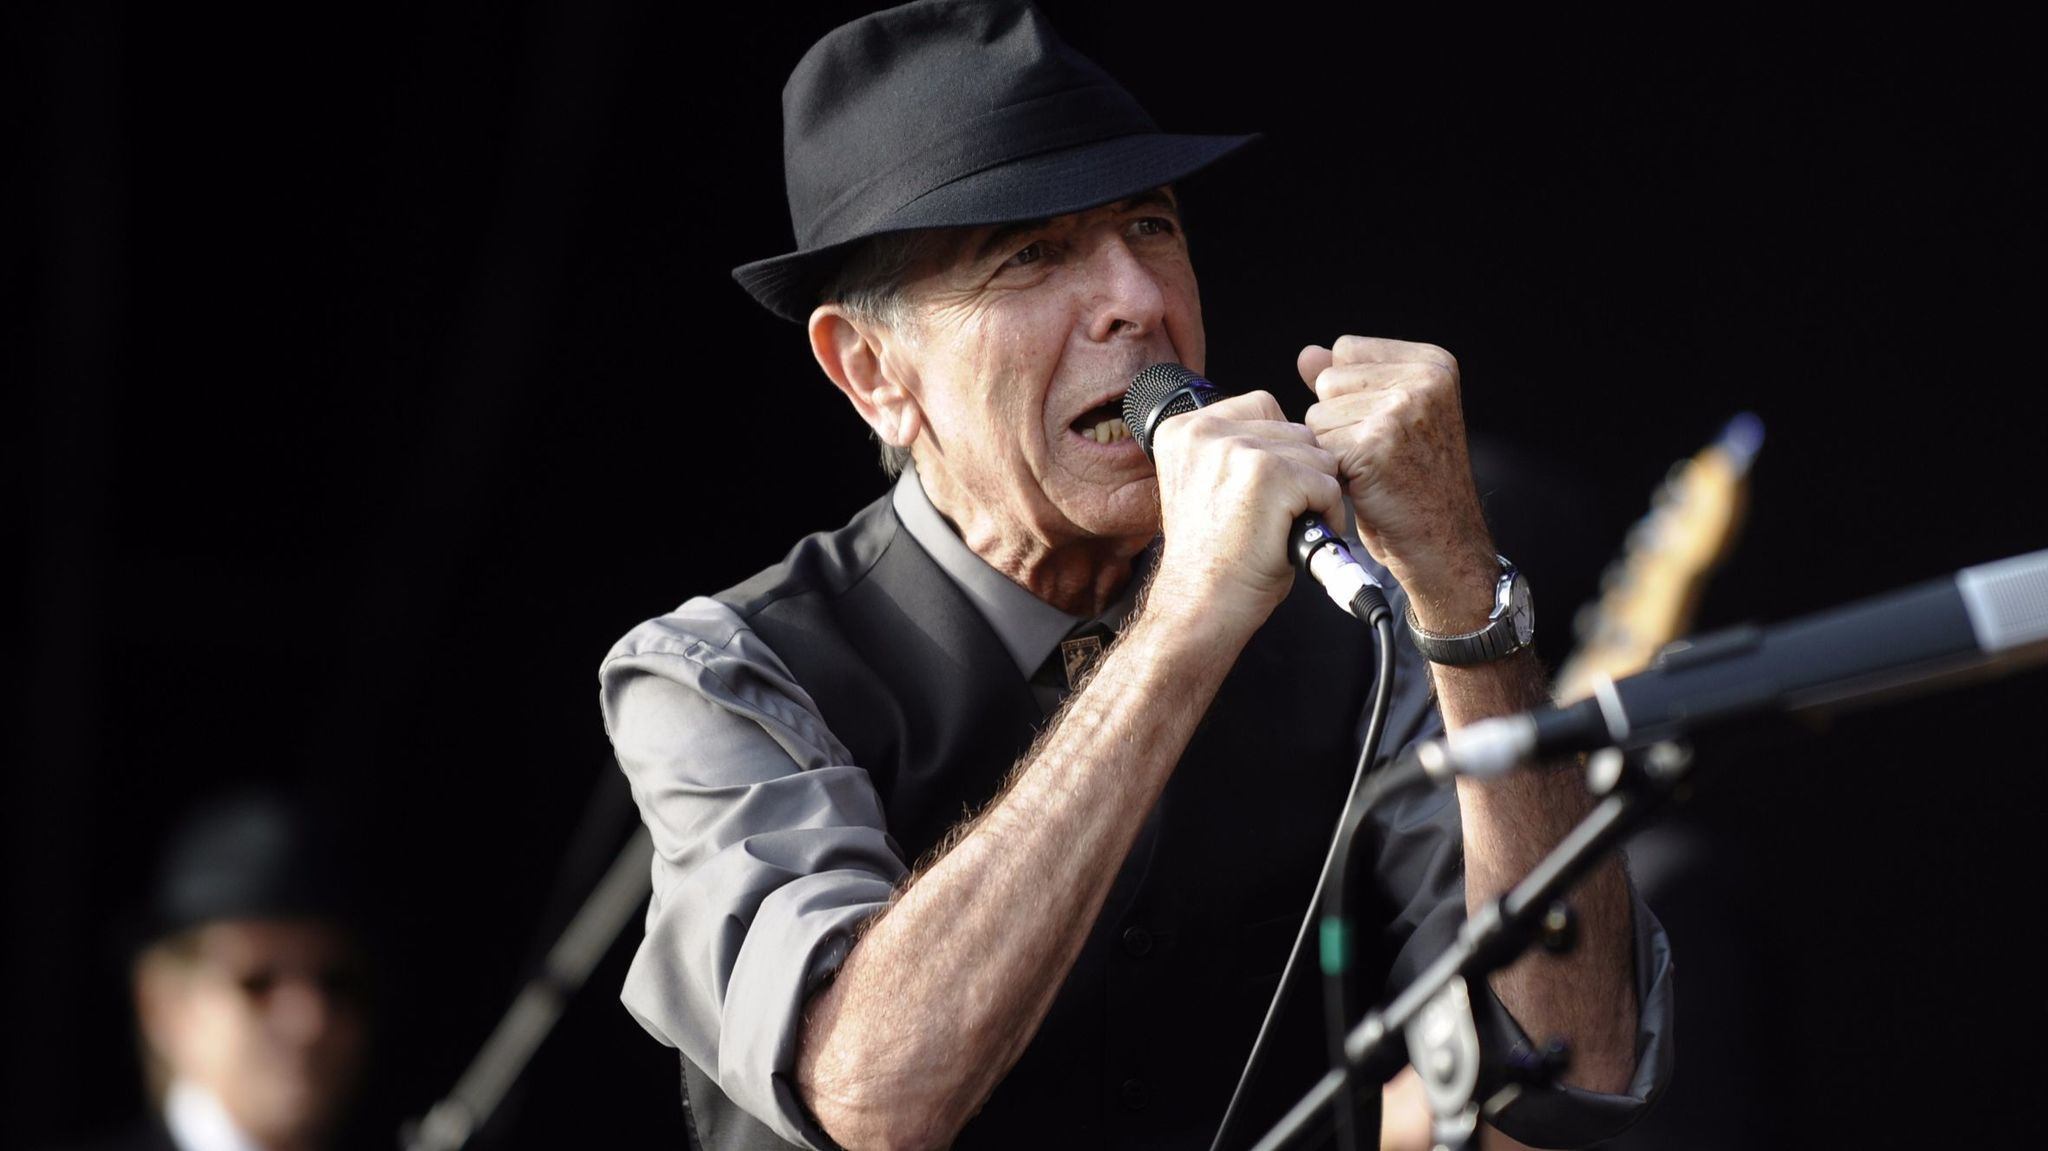 What did Leonard Cohen really mean when he sang ... Hallelujah